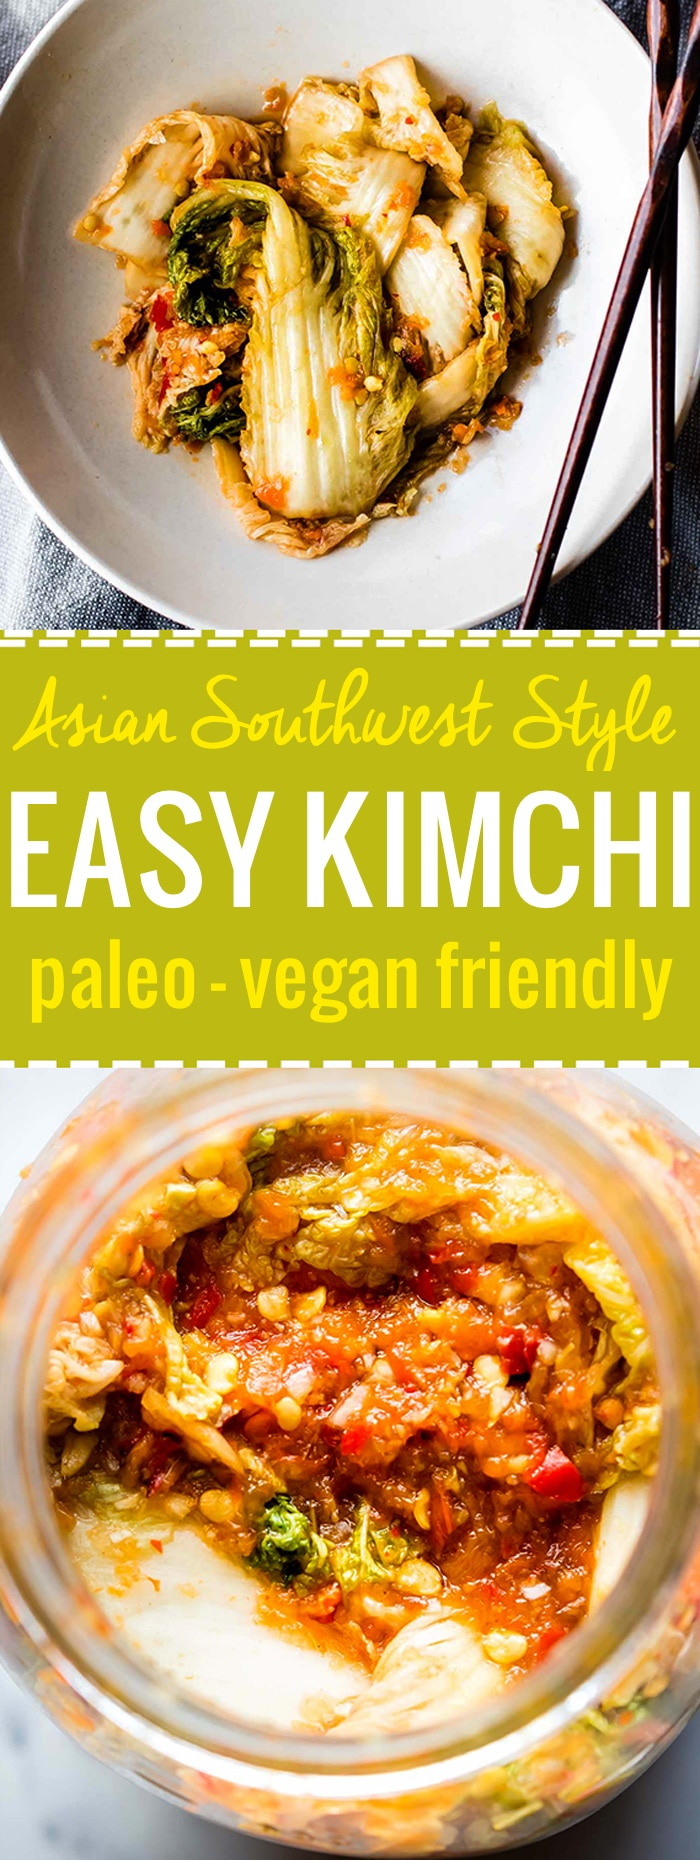 Asian Southwest Fusion EASY Kimchi Recipe. A spicy, tangy, and oh so Easy kimchi recipe! This paleo Asian Southwest Fusion style kimchi takes little to prep and make. The hardest part is waiting for it to ferment.. Yep, a healthy side or topping to any dish. Vegan Friendly. @cottercrunch